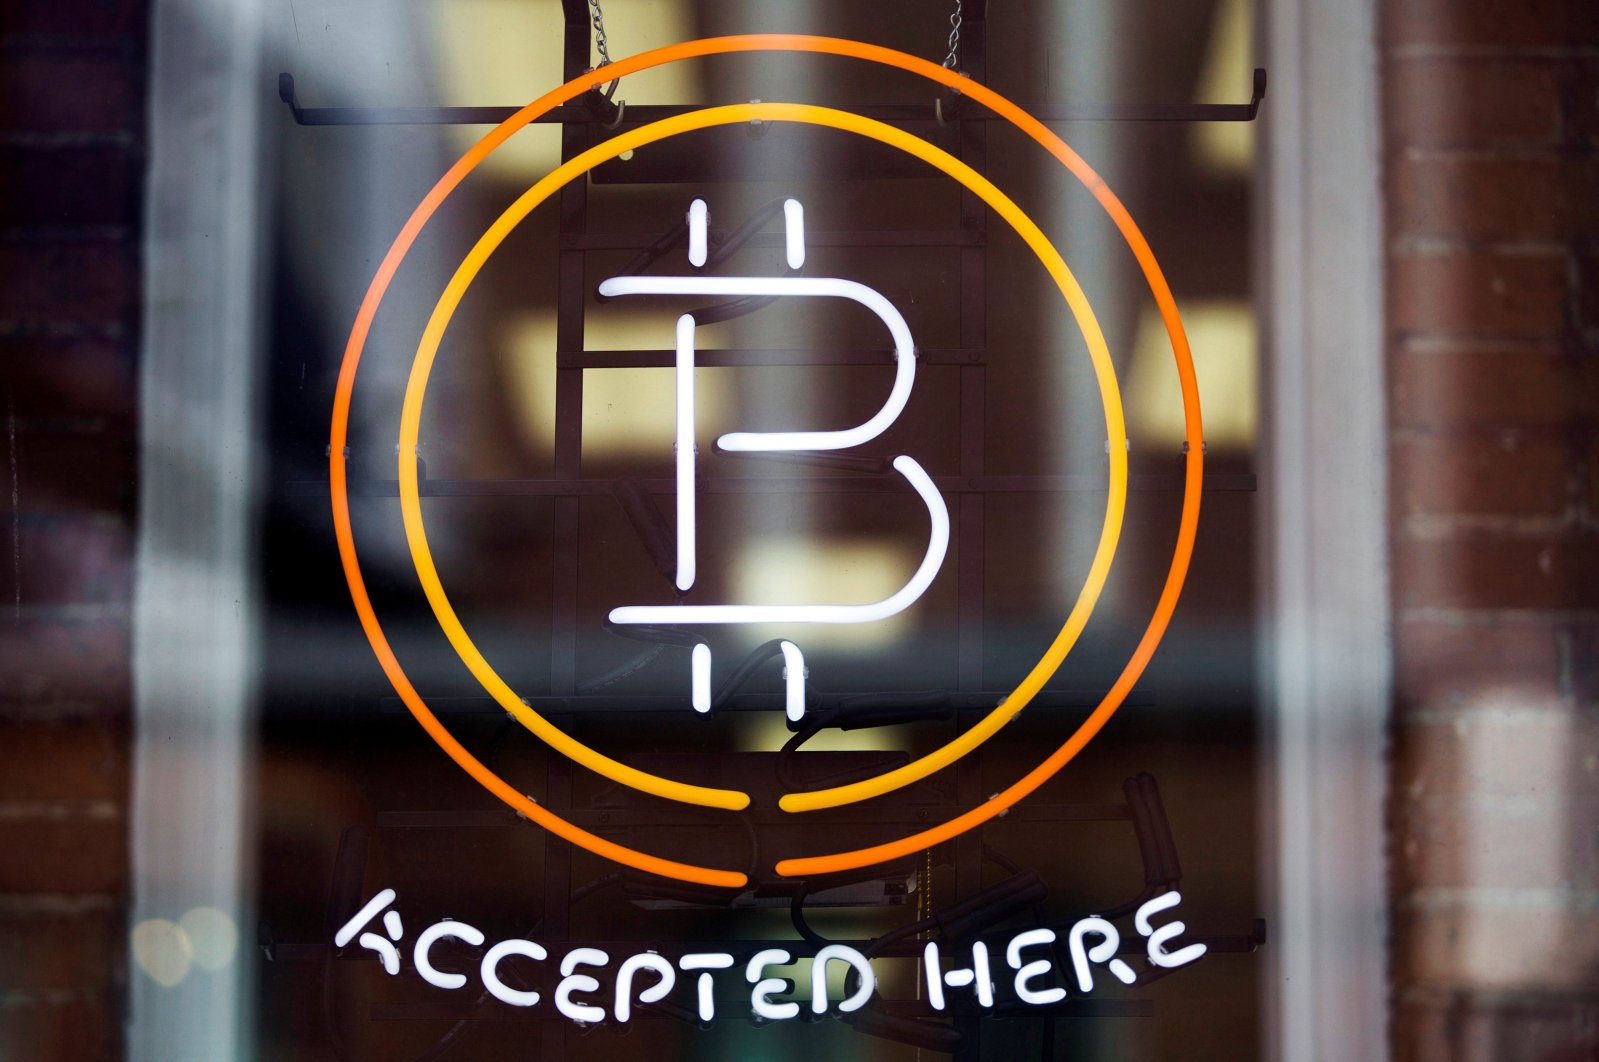 A Bitcoin sign in a window in Toronto, Canada, May 8, 2014. (Reuters File Photo)